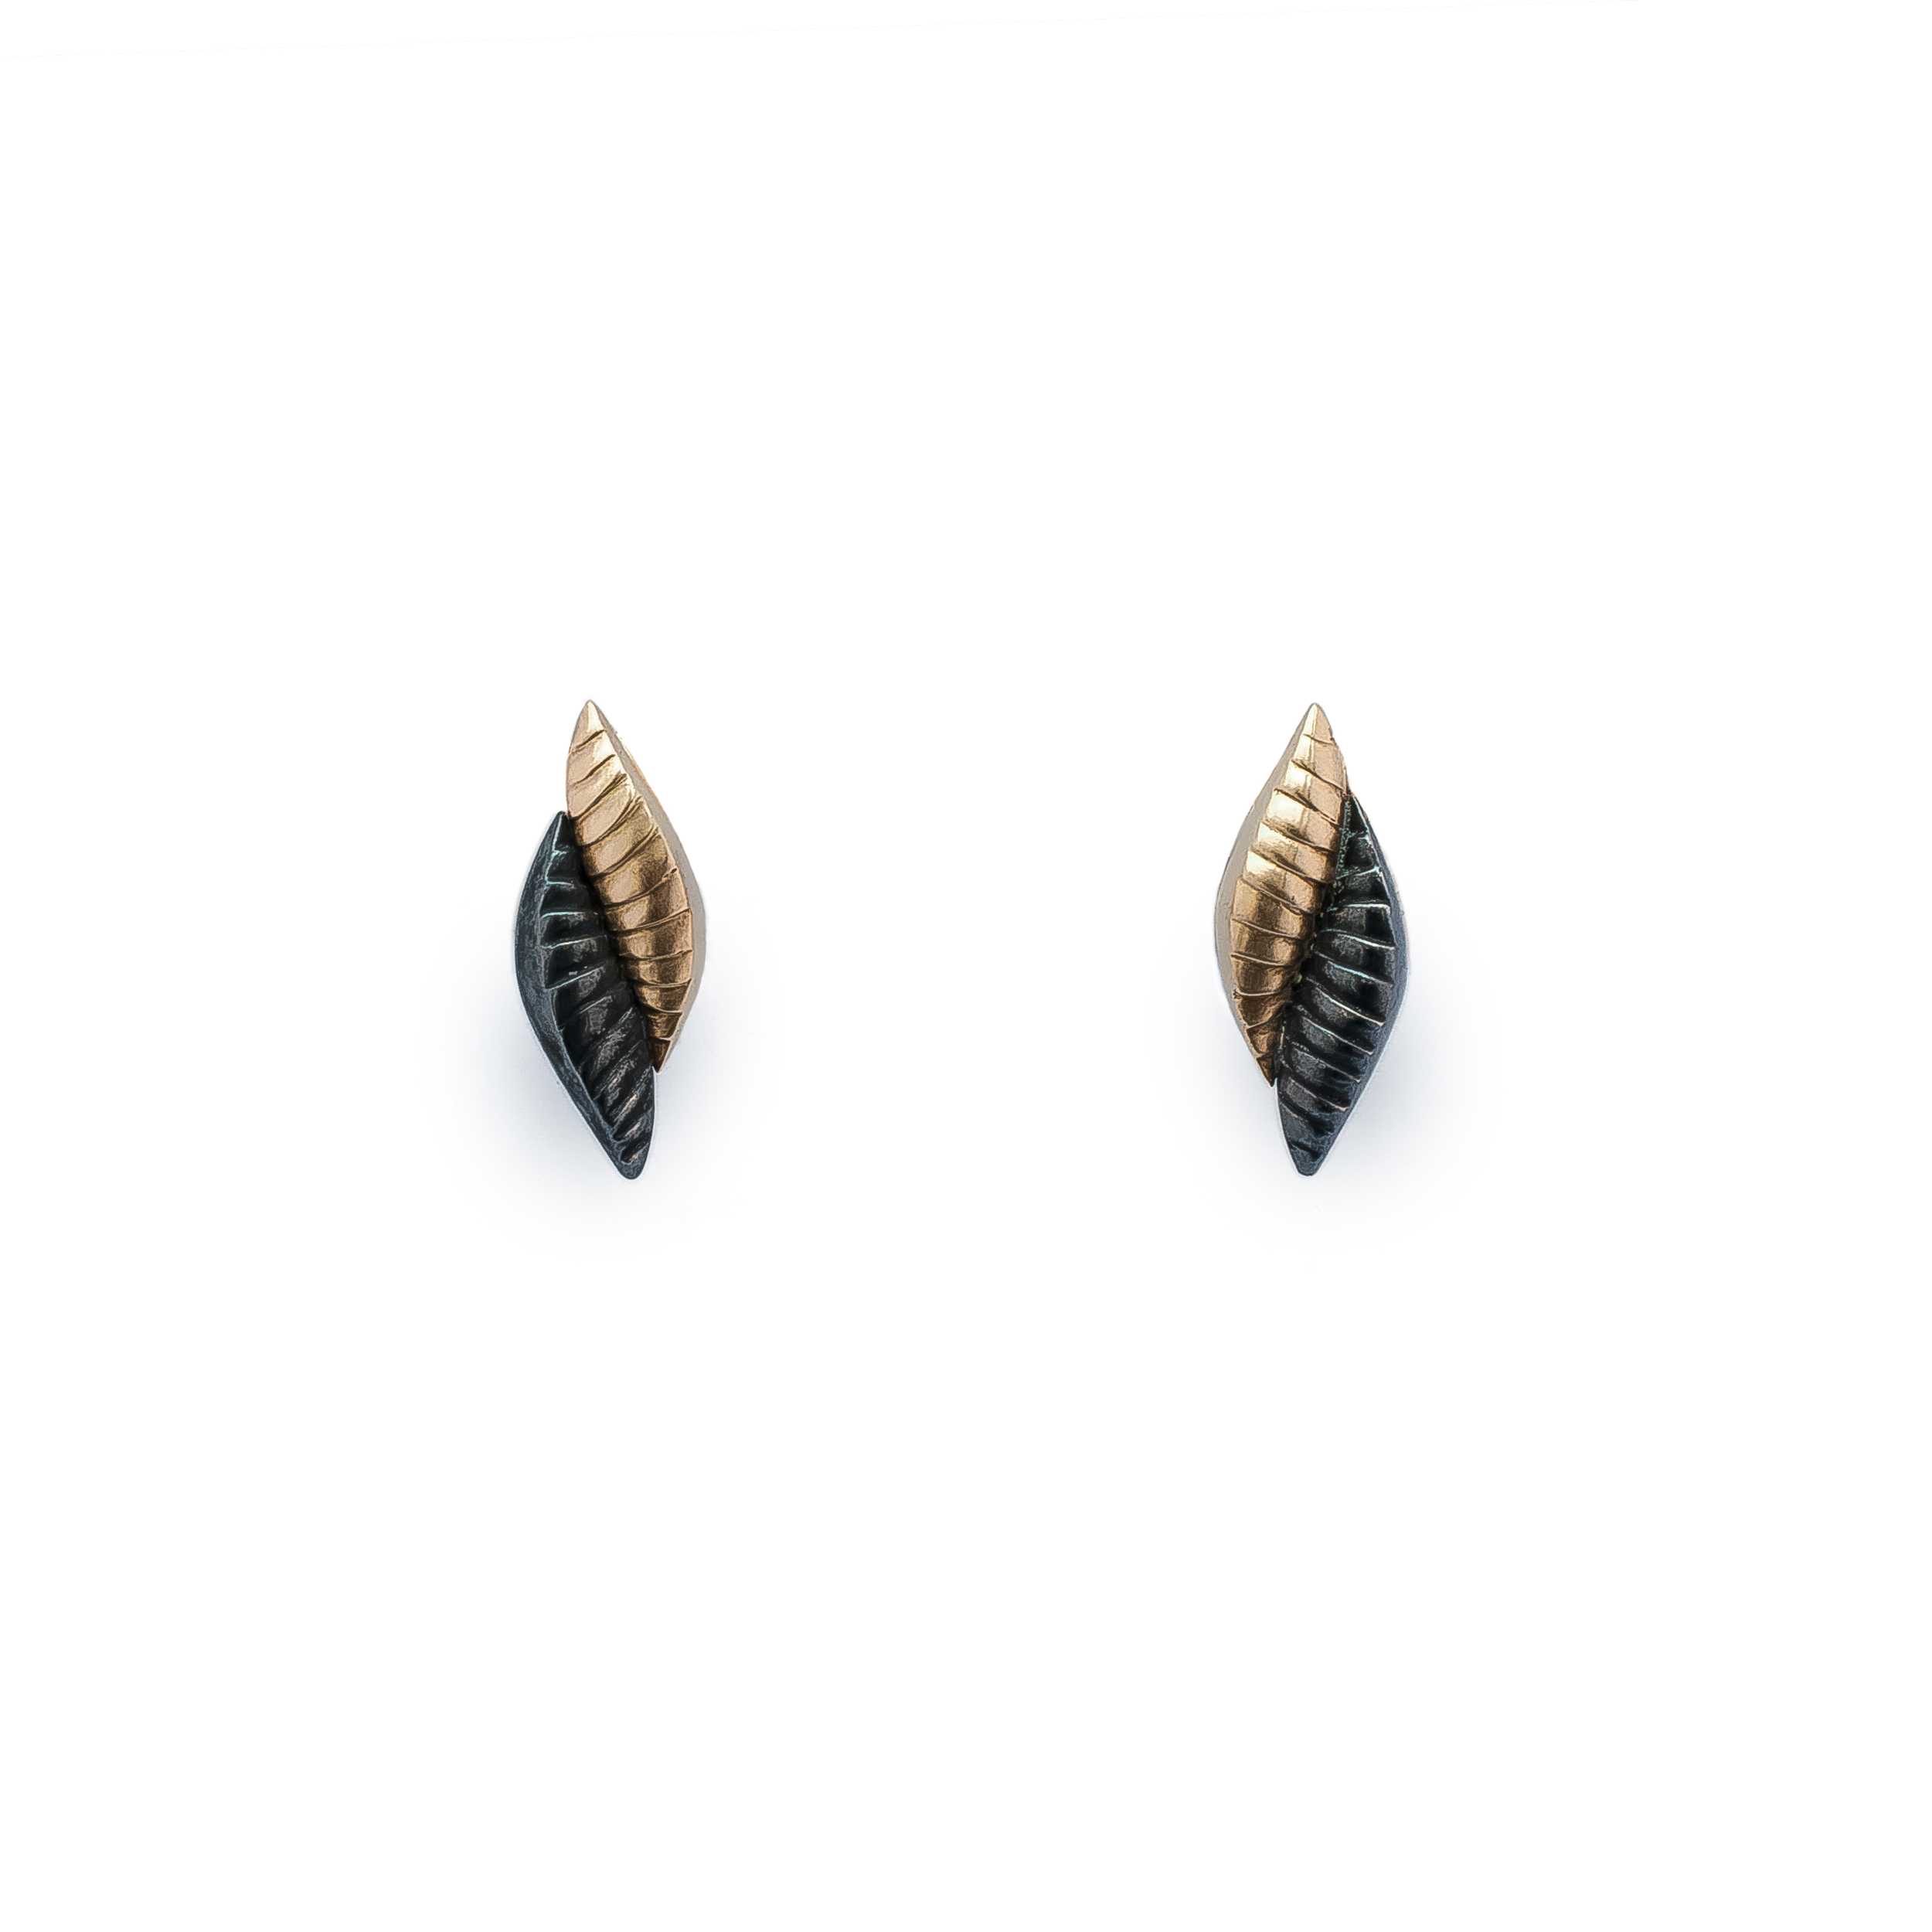 Snake earring short Final (1 of 2).jpg